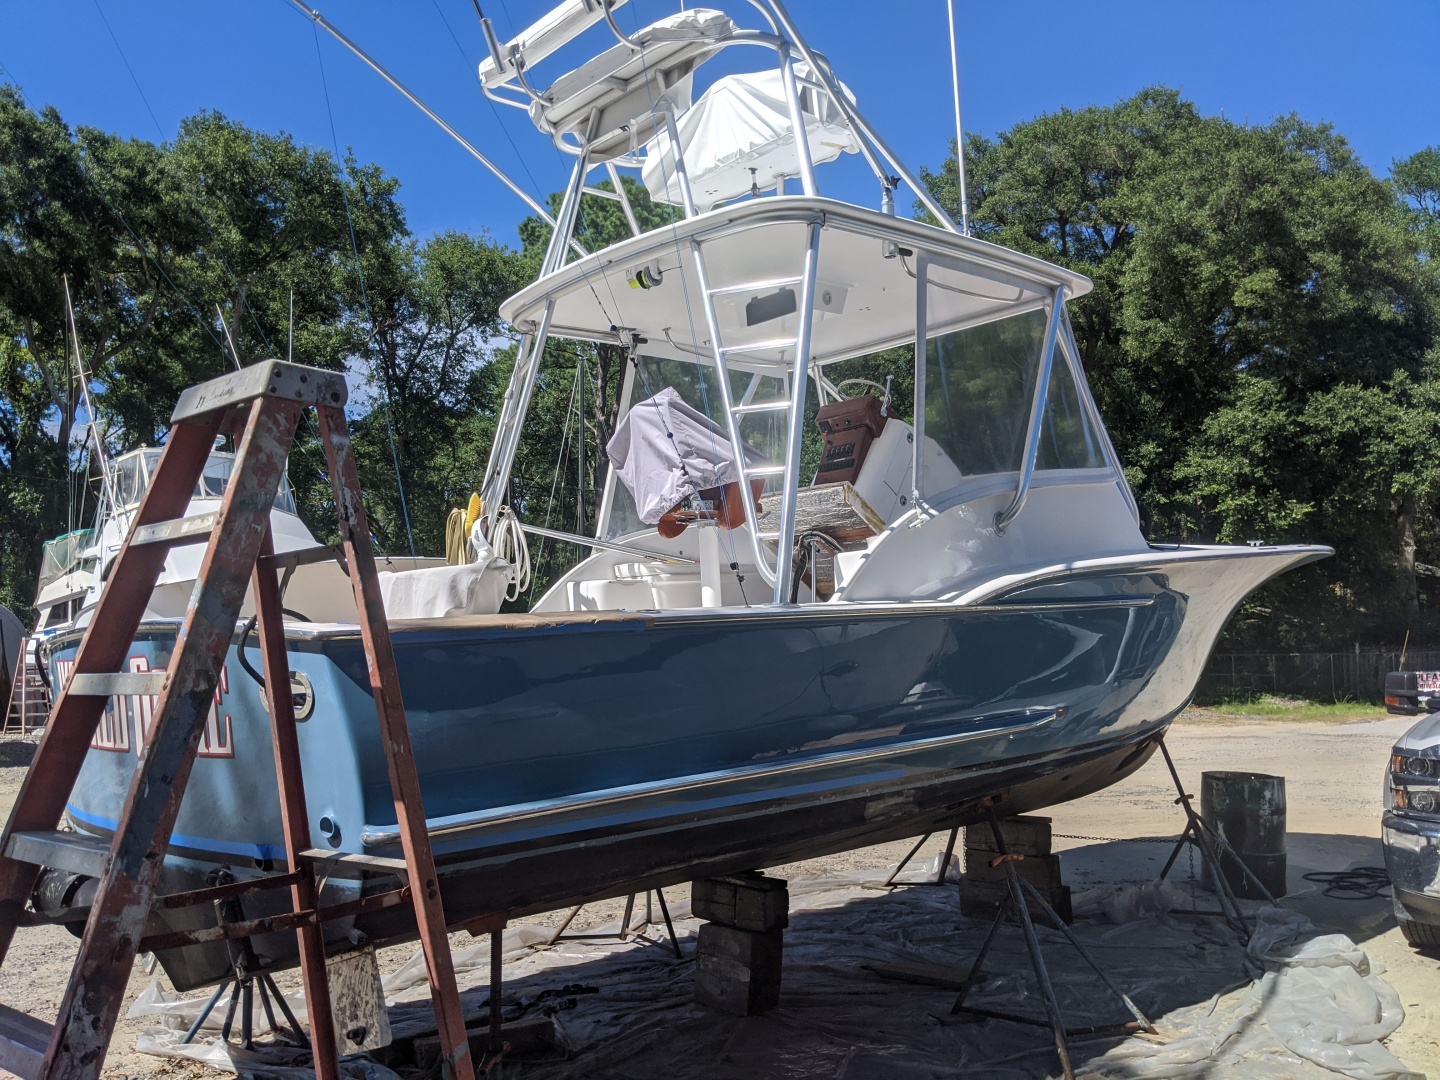 Shearline-31 Center Console Sportfish Express 2002-Wicked Game Isle of Palms-South Carolina-United States-1512794 | Thumbnail